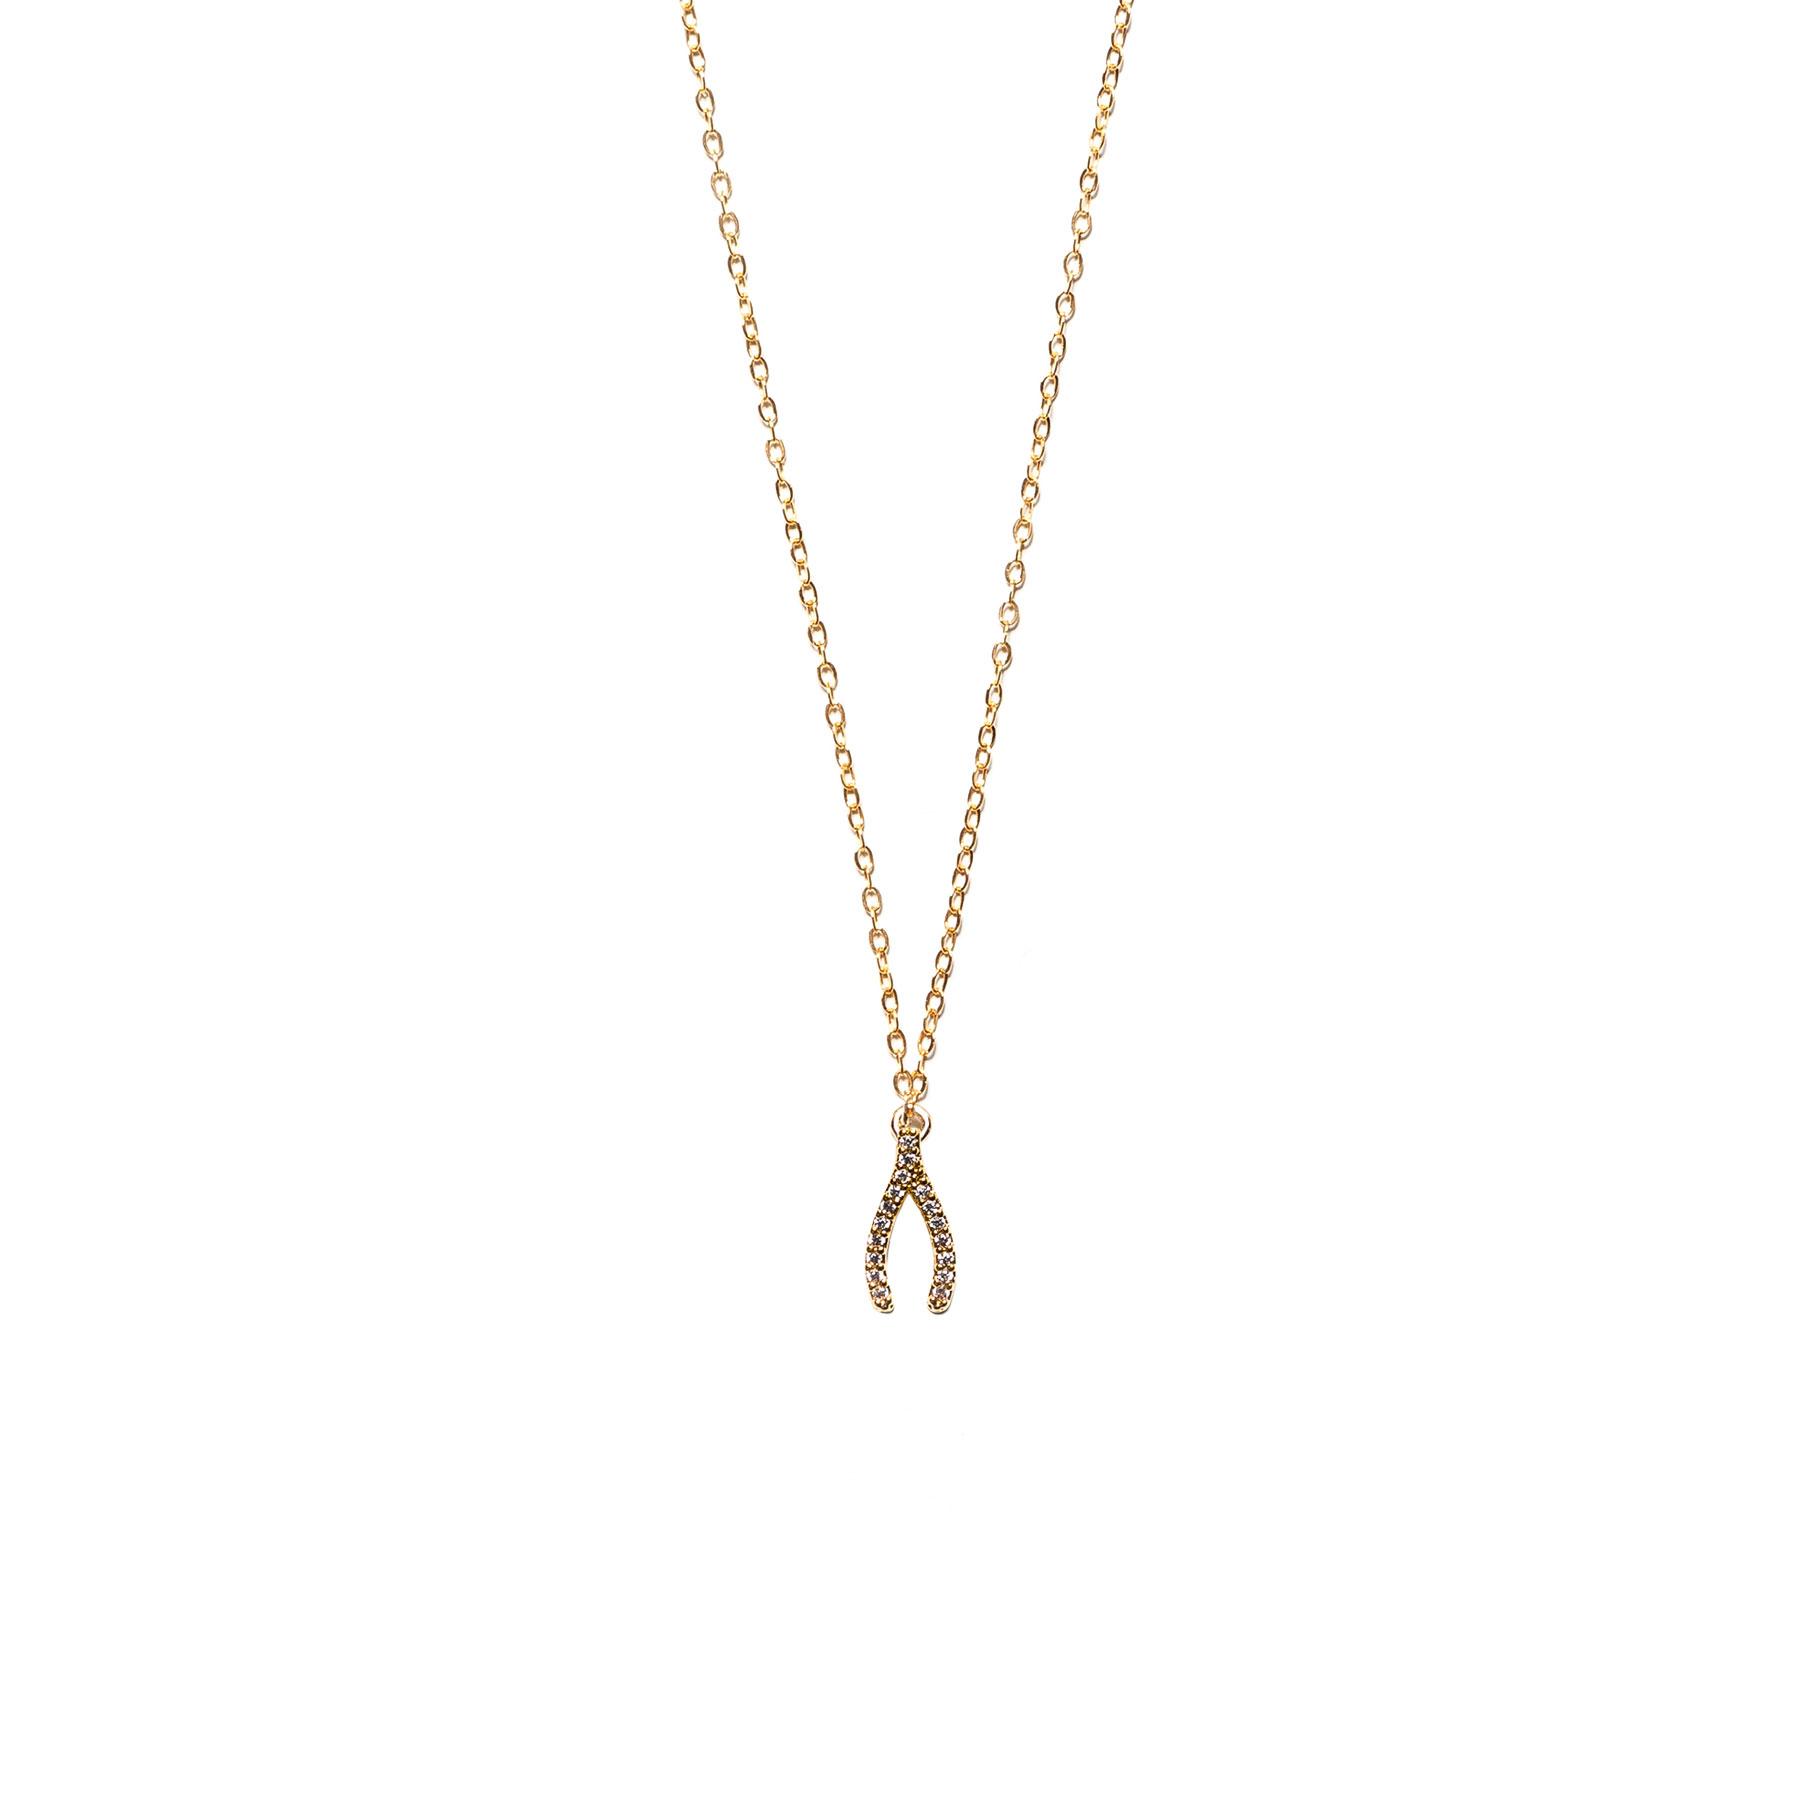 Wishbone Necklace, Pave, Gold Filled With Most Popular Sparkling Wishbone Necklaces (View 16 of 25)